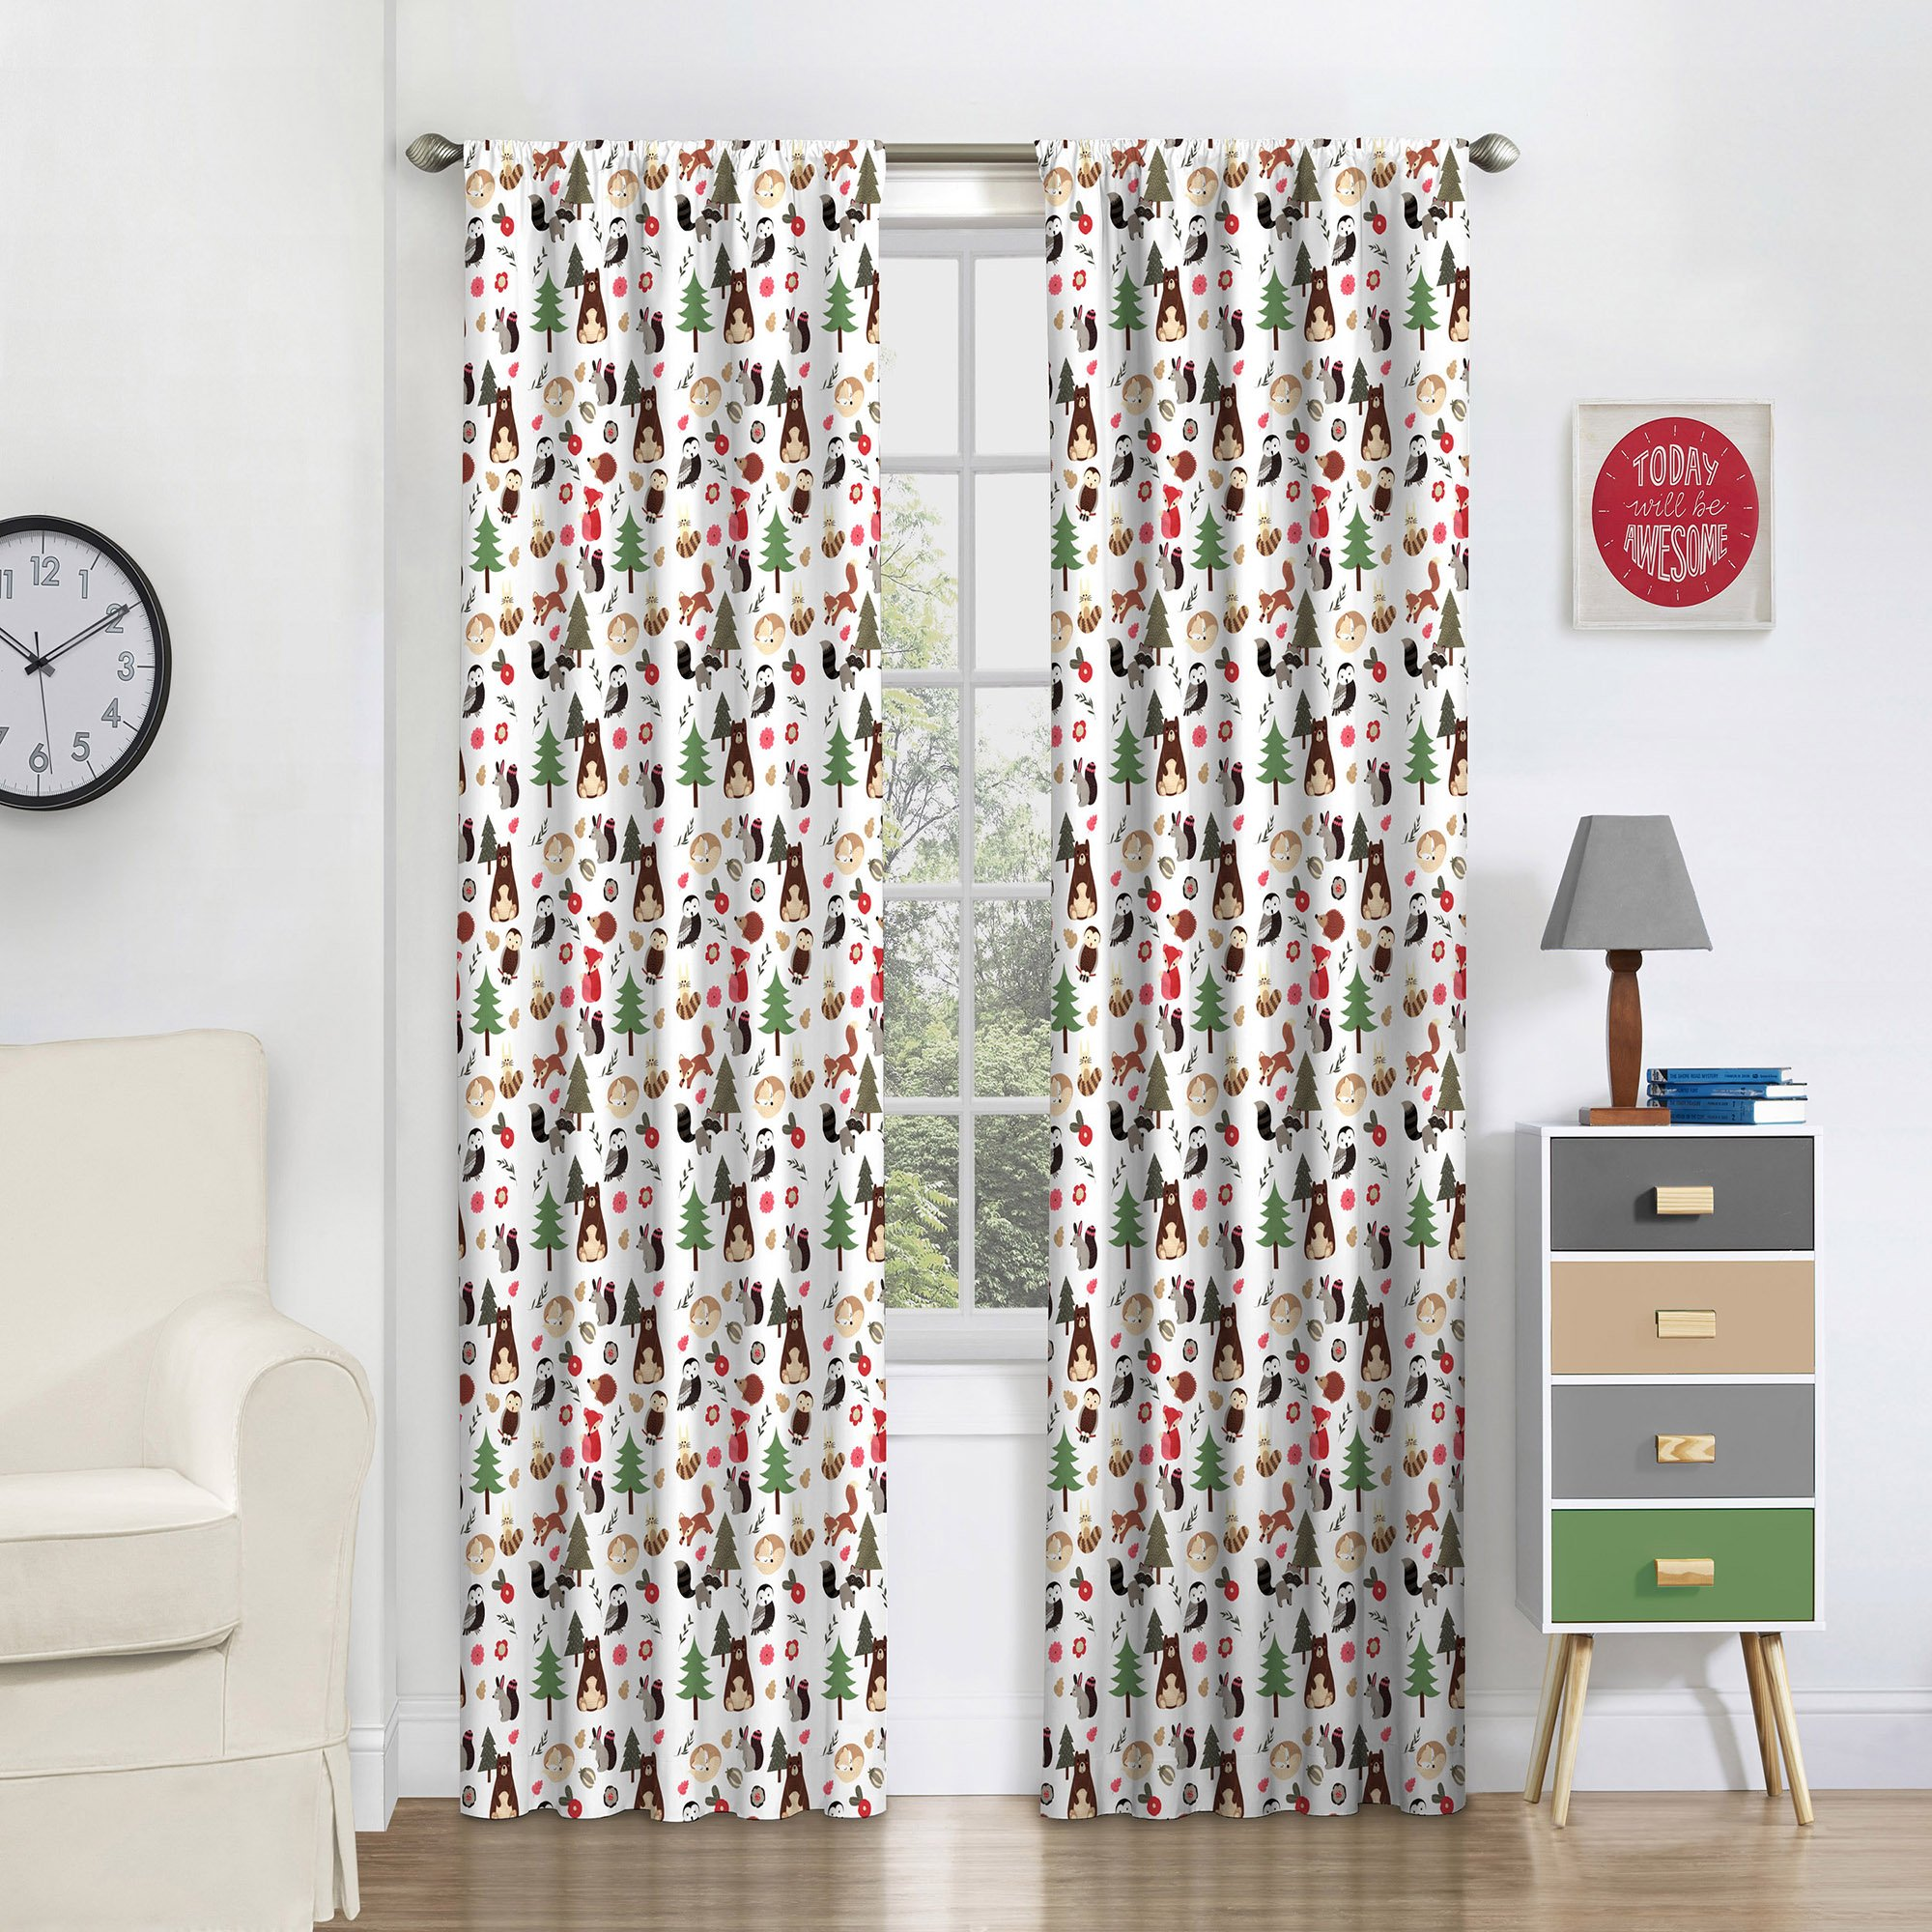 Eclipse 16460042X084MUL Forest Friends 42-Inch by 84-Inch Single Window Curtain Panel, Multi